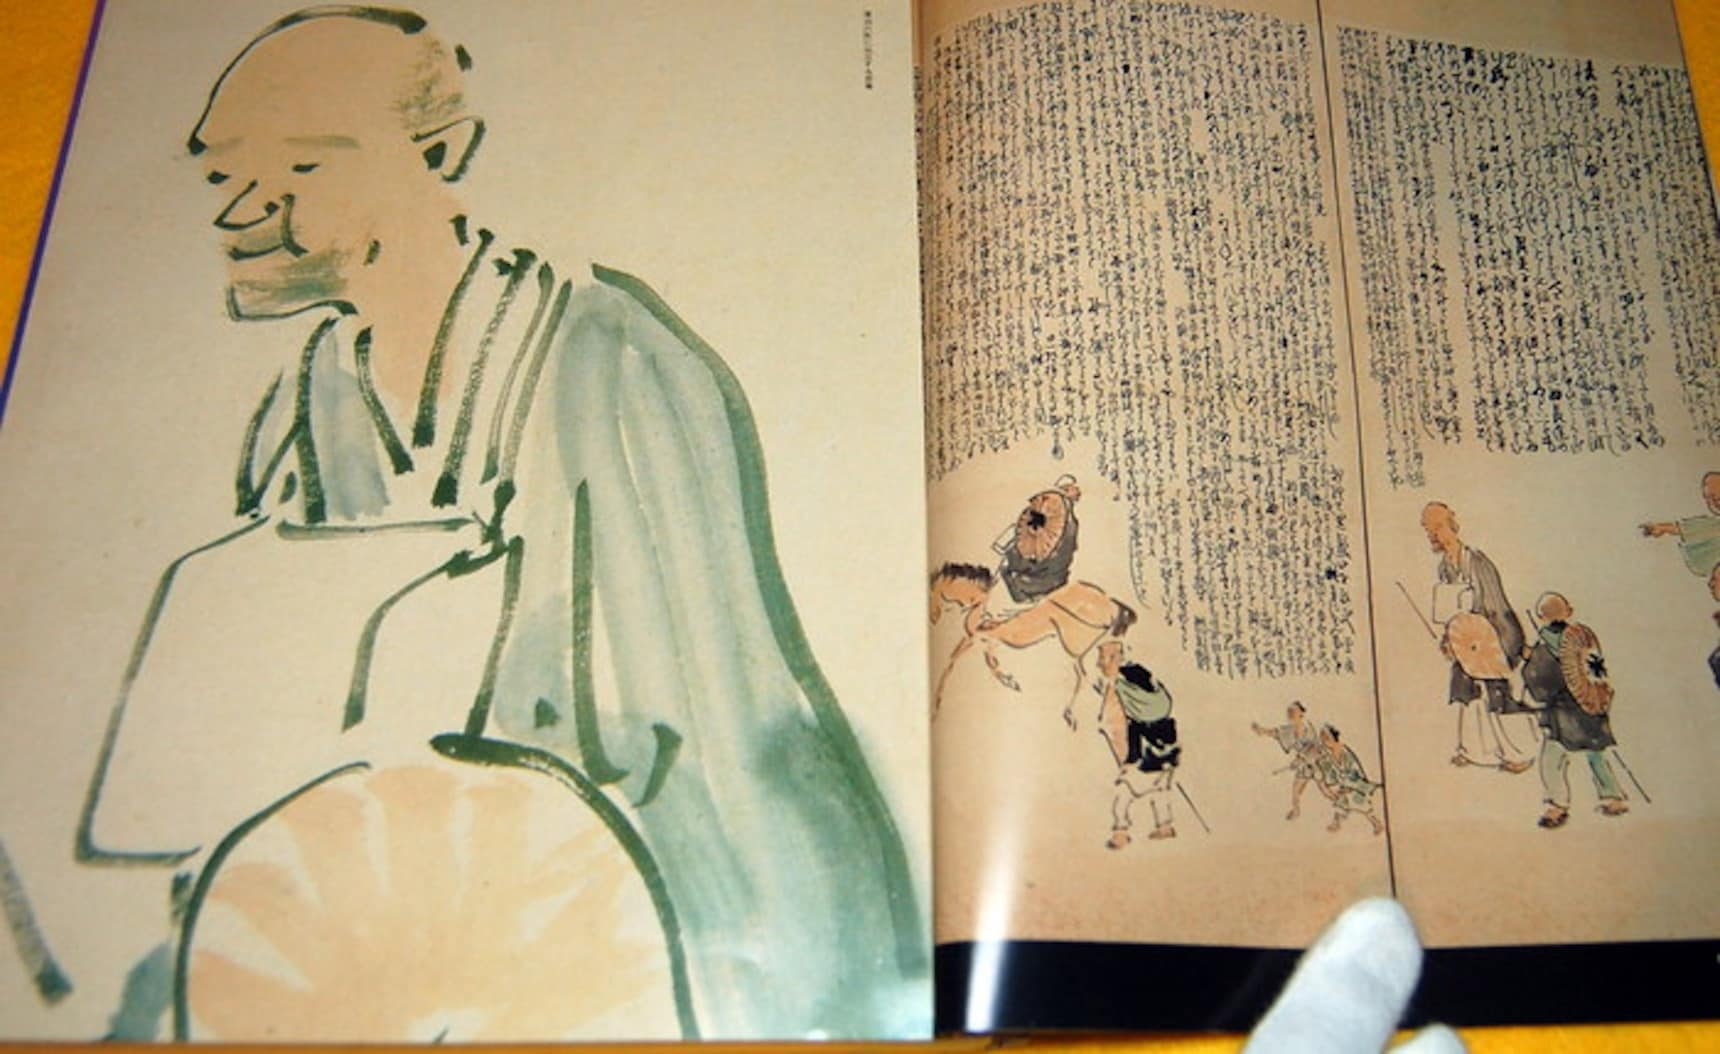 Follow the Footsteps of Poet Matsuo Basho